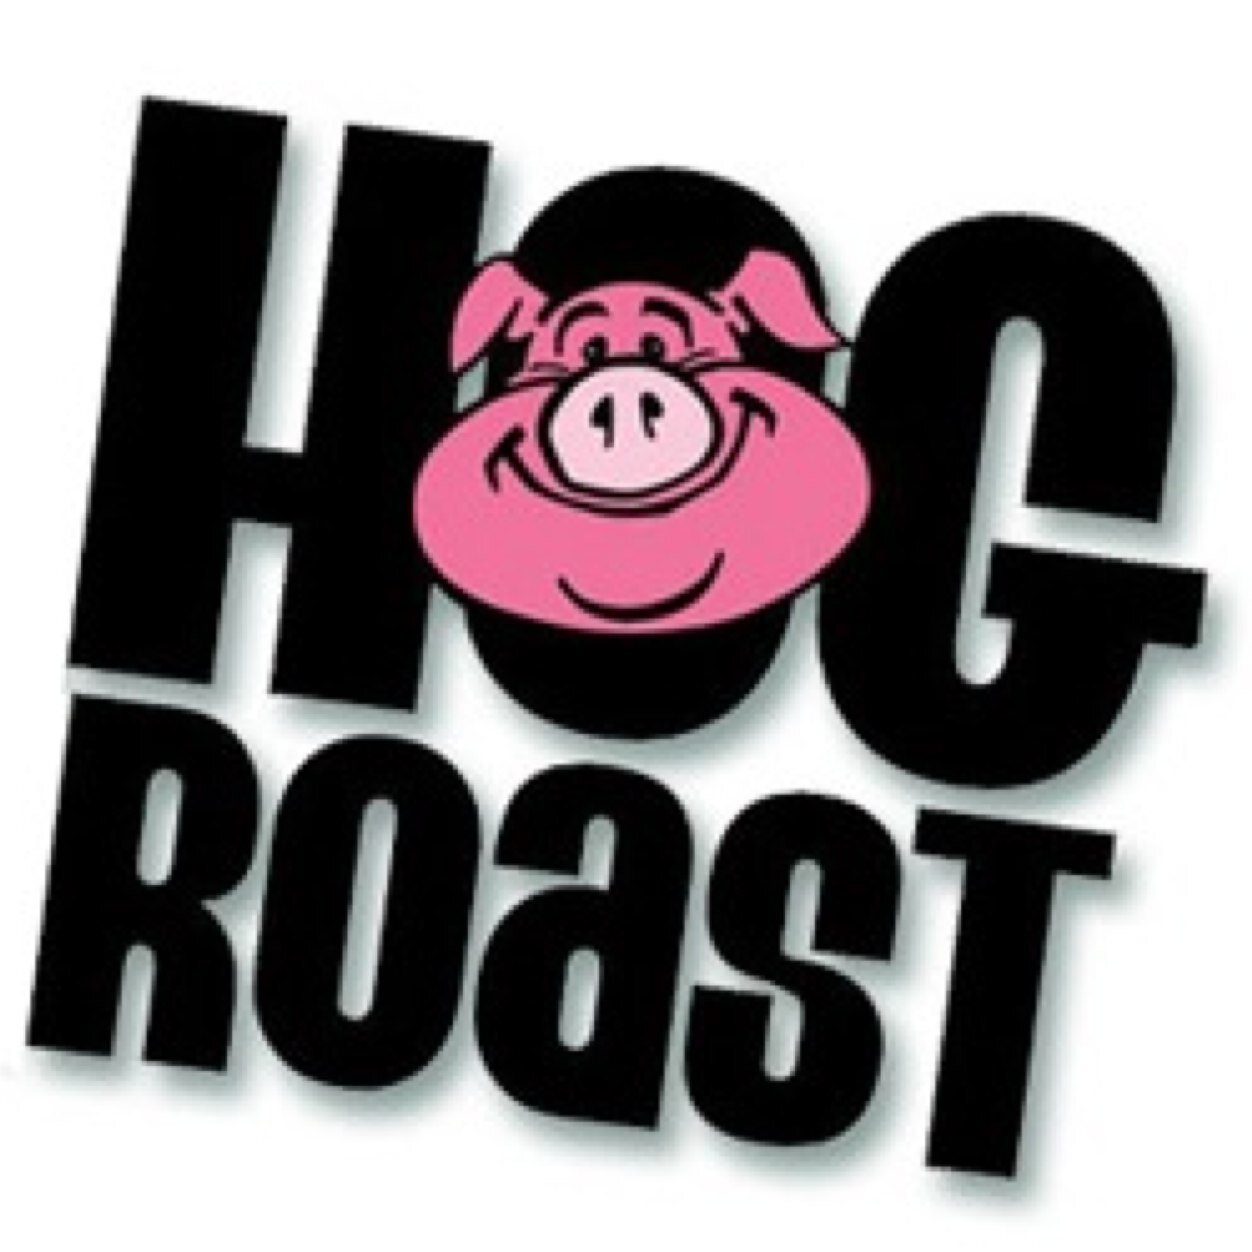 pinkys hog roast   pinkyshogroast  twitter cookout clip art in spanish cookoff clip art